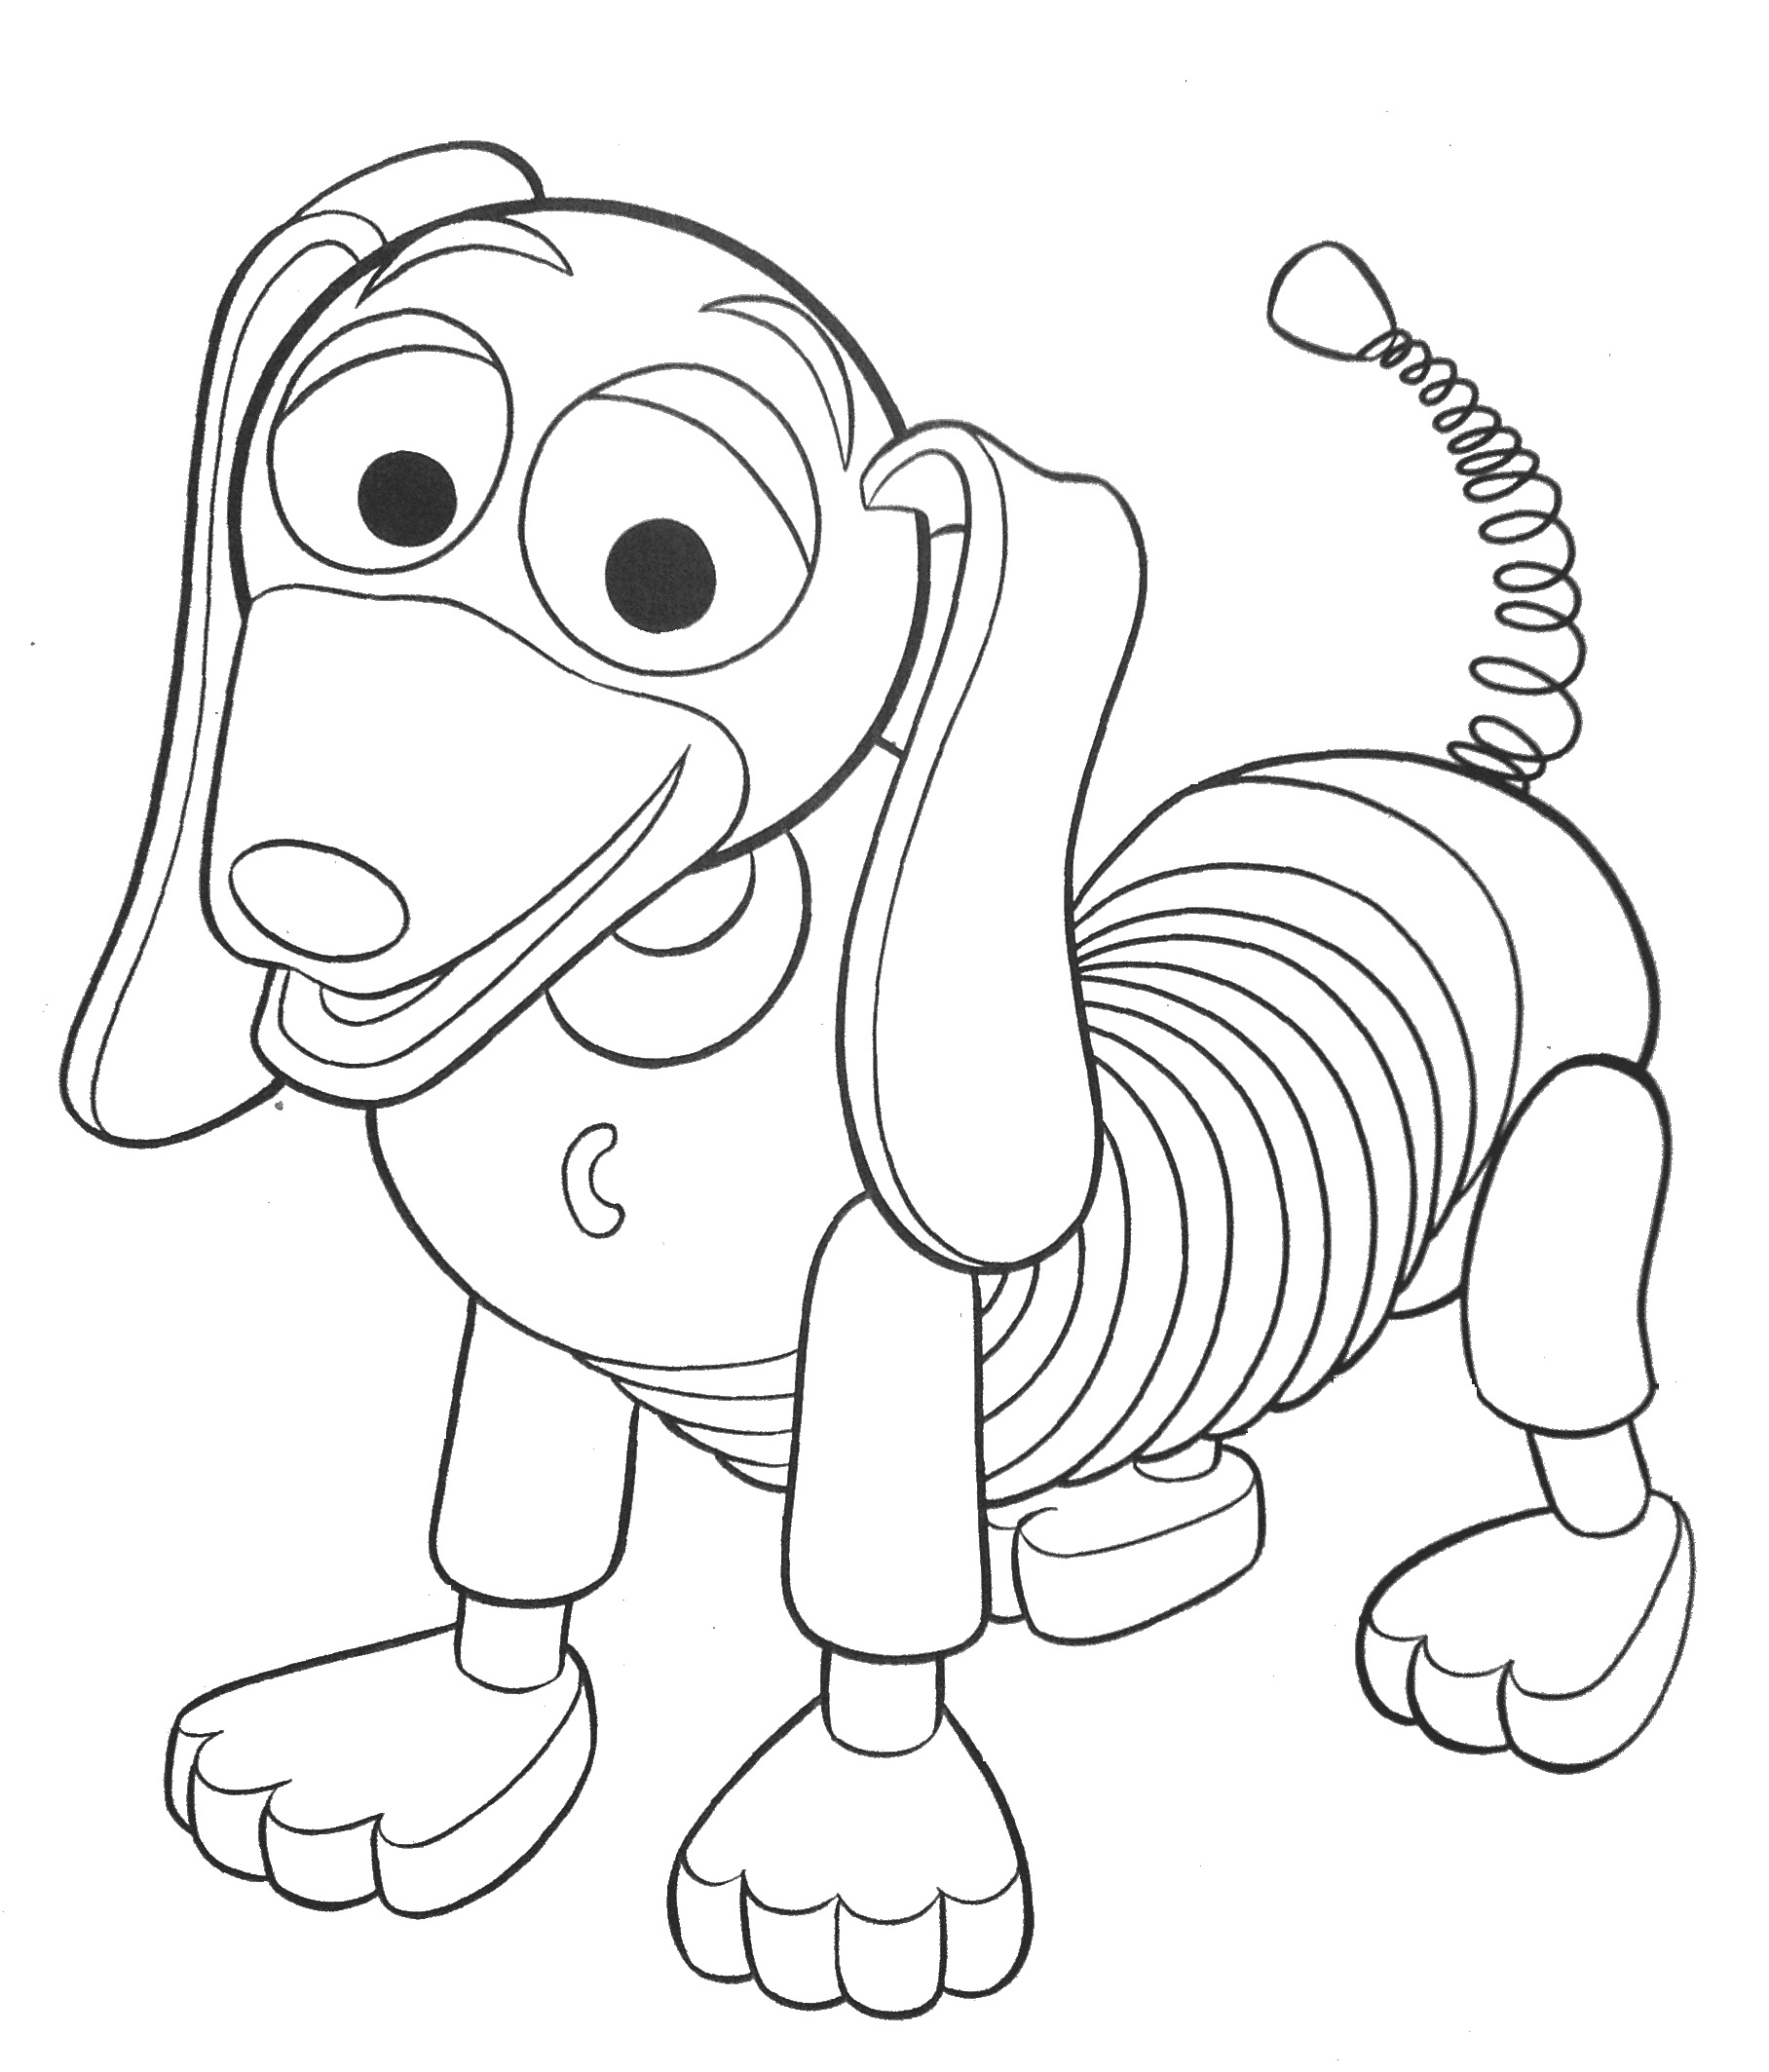 1816x2127 Dog Toy In Toy Story Free Coloring Page Disney, Kids, Toy Story